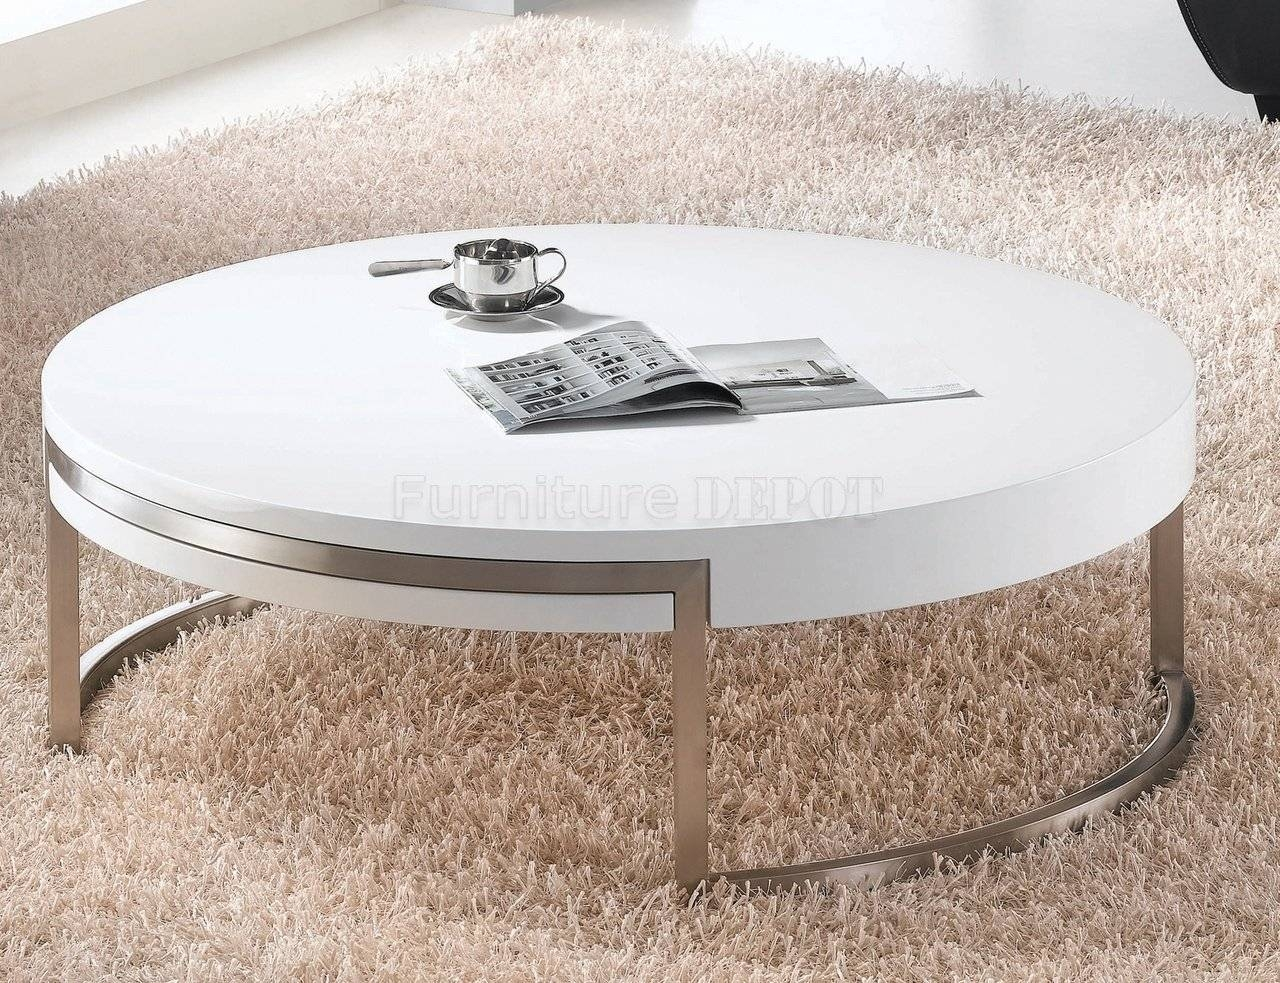 Round High Gloss Coffee Table - Starrkingschool throughout White Gloss Coffee Tables (Image 21 of 30)